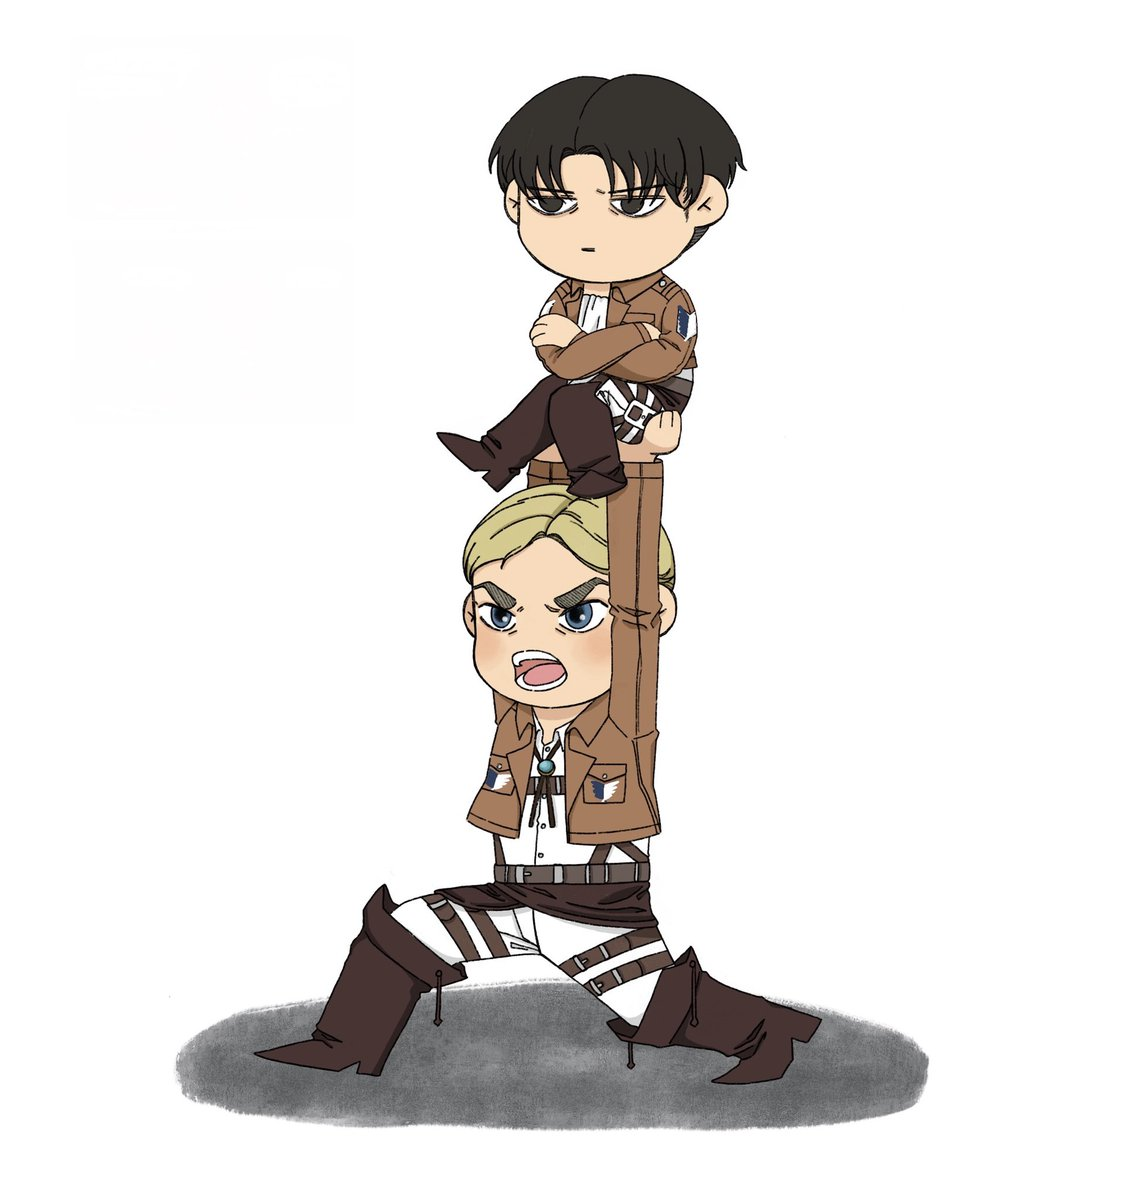 Replying to @salmonqueenn: idk just Erwin Smith showing off his proud tineh bf